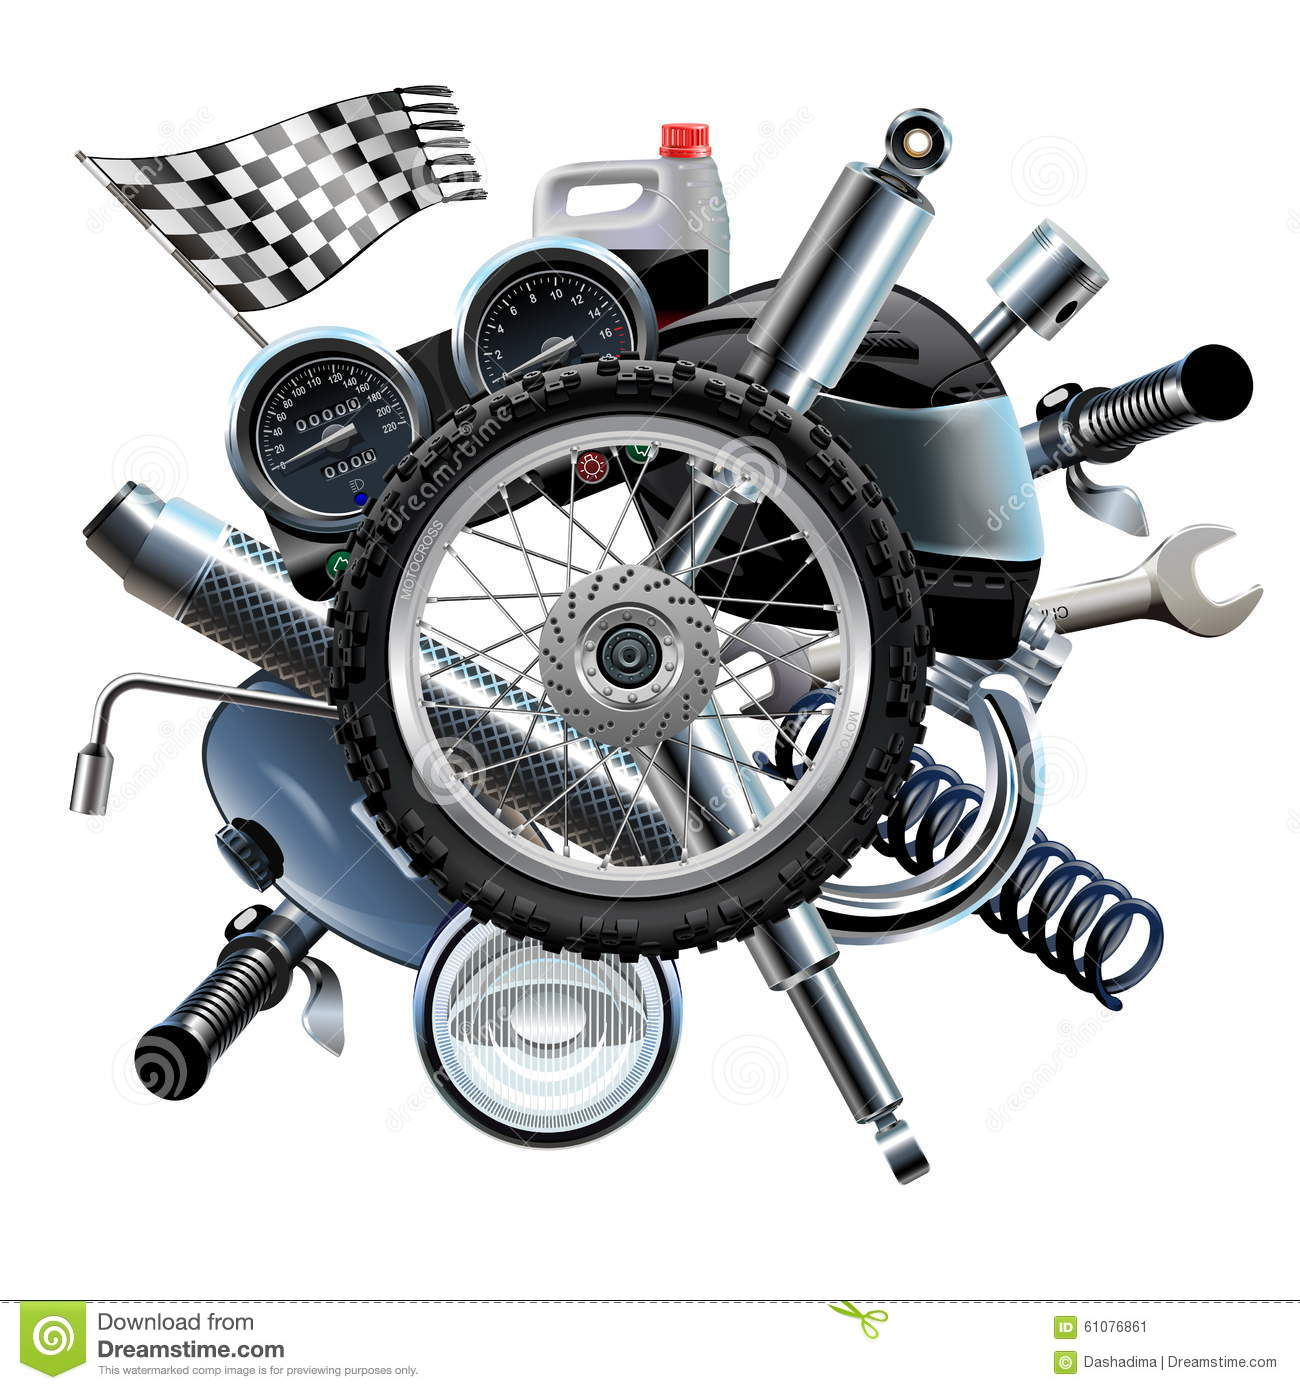 Spare parts of motorcycle business plan